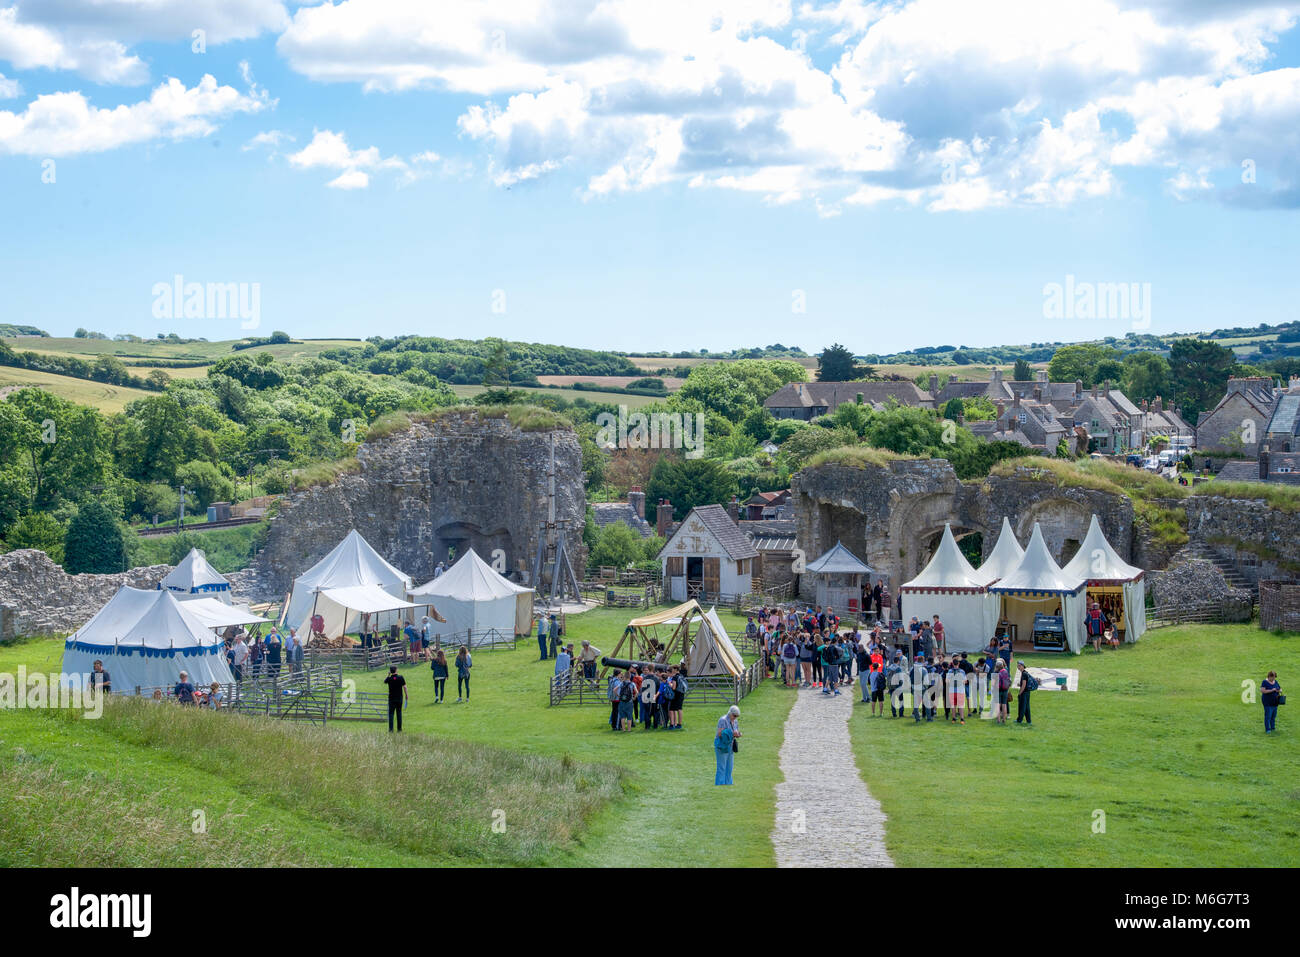 Mediaeval fair set up in the grounds of Corfe Castle, Purbeck Hills, Dorset, England - Stock Image